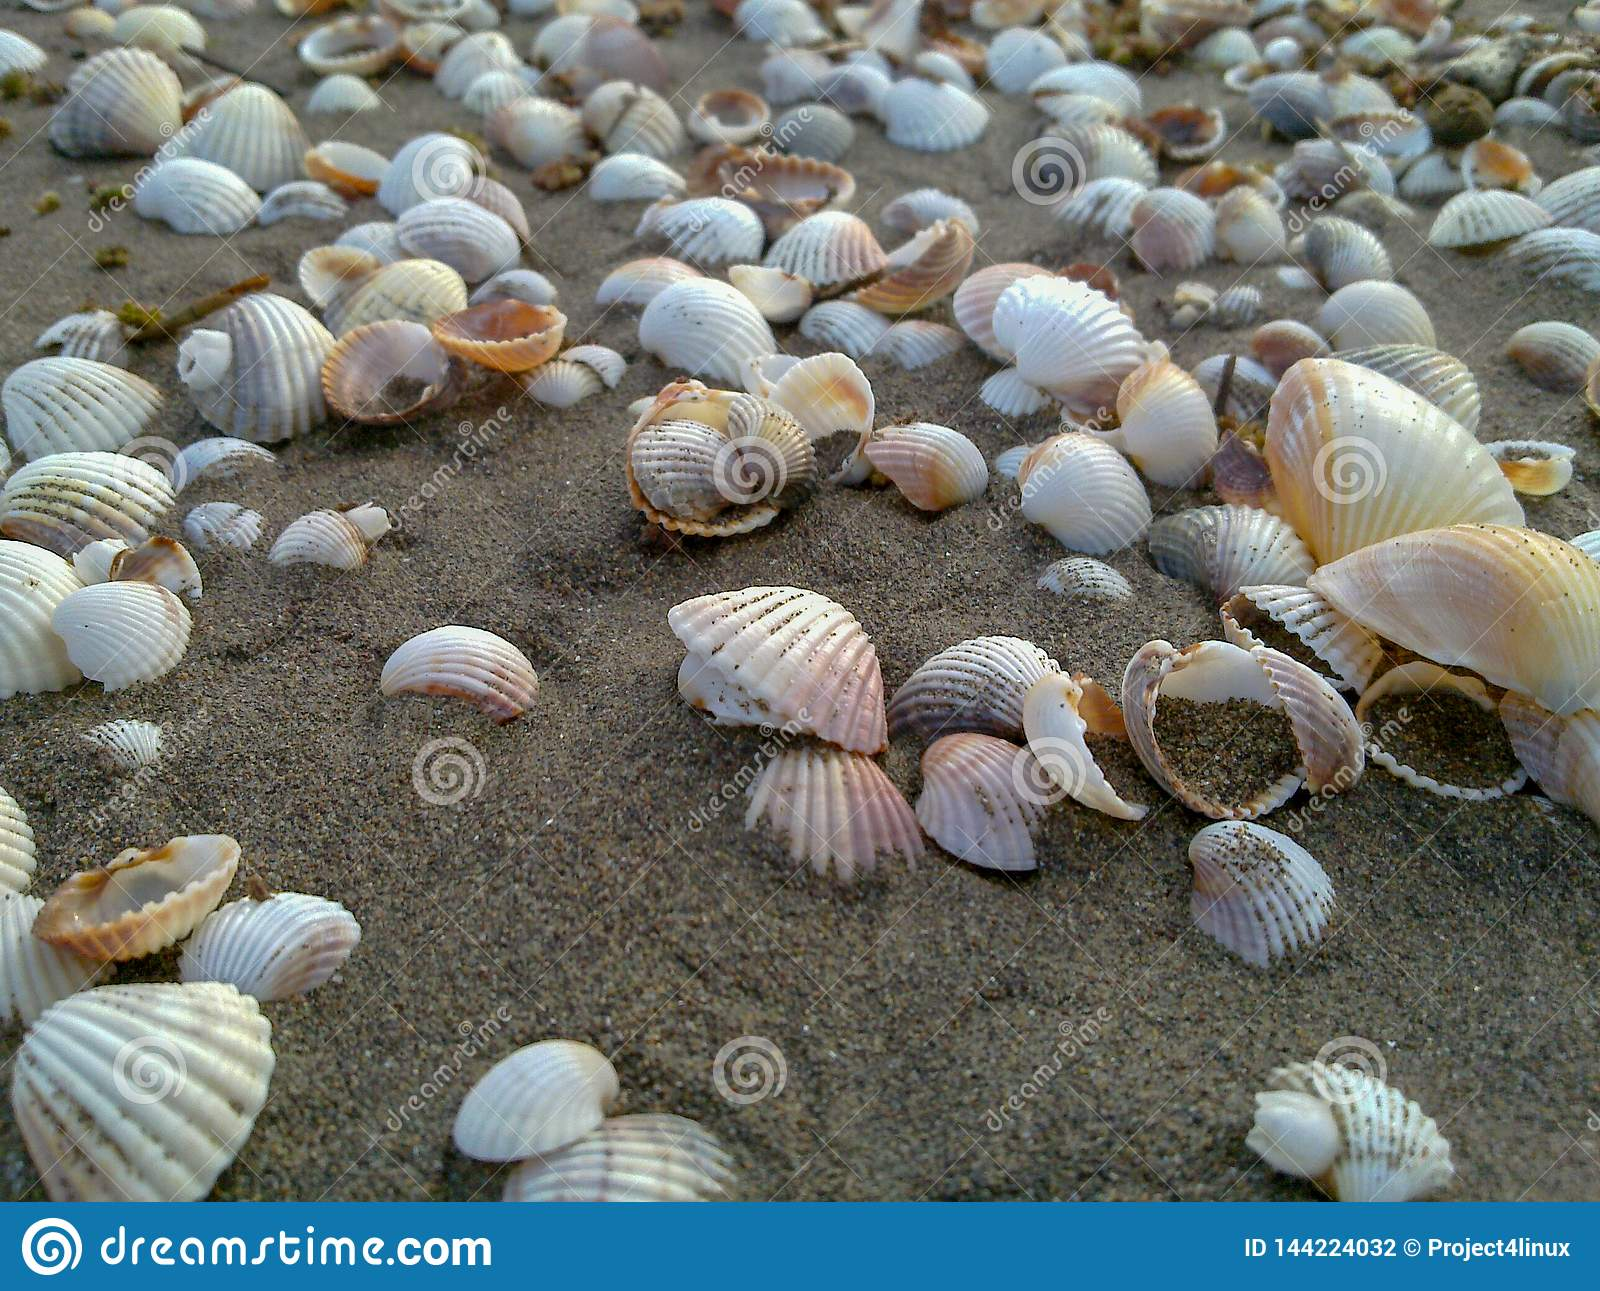 Sea Shells form a trail on the sand at caspian beach, Iran, Gilan